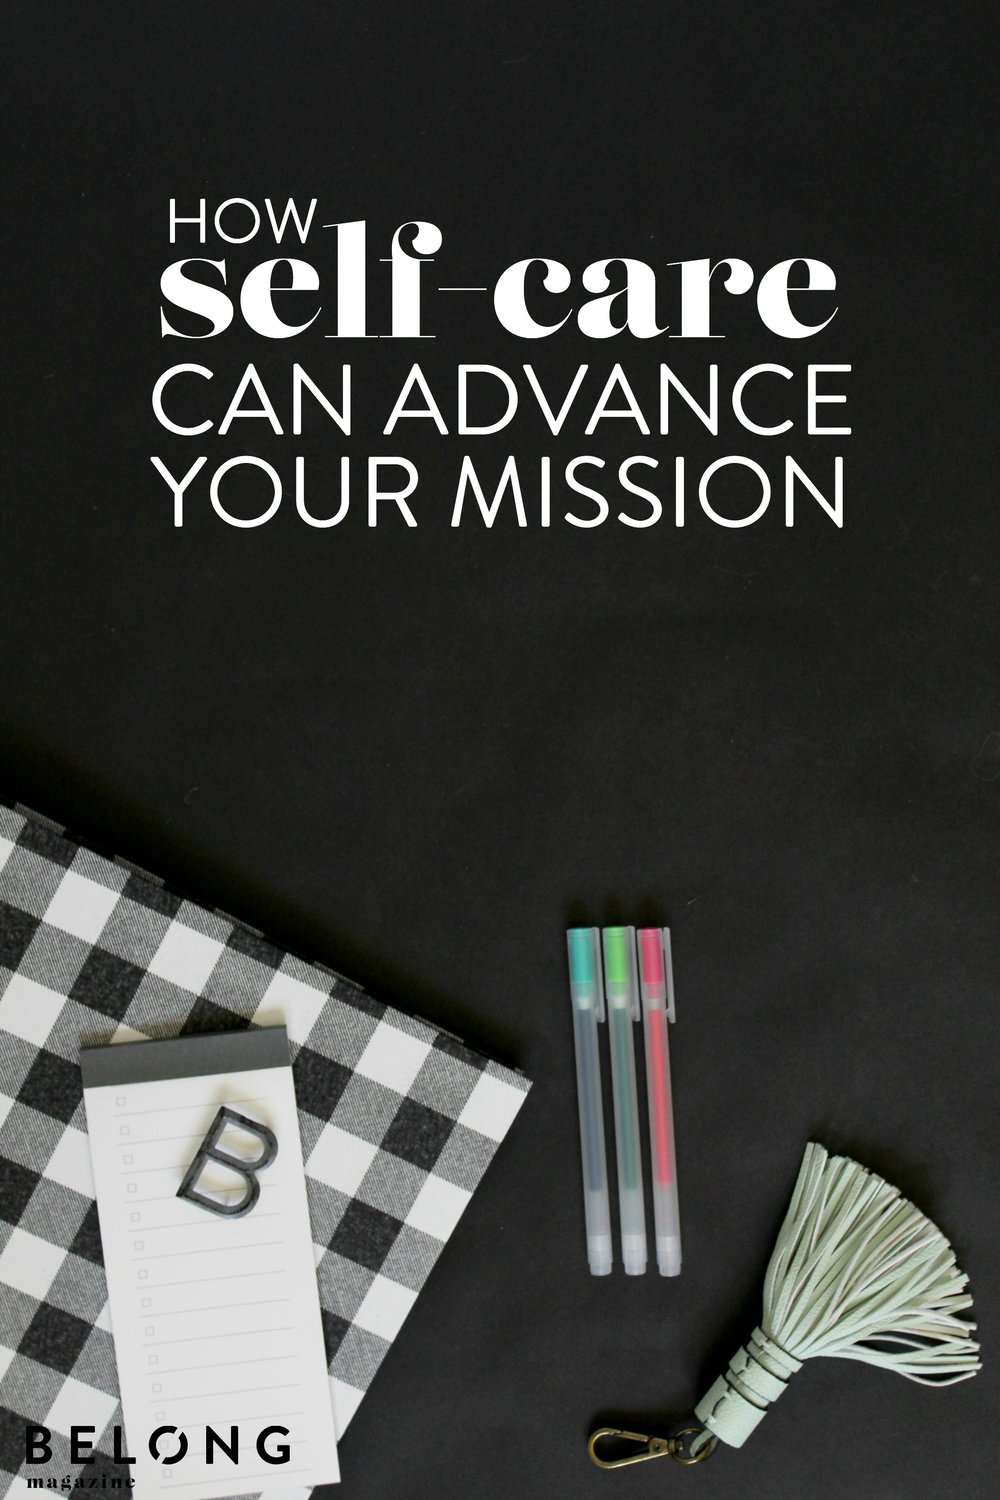 how self-care can advance your mission pin.jpg